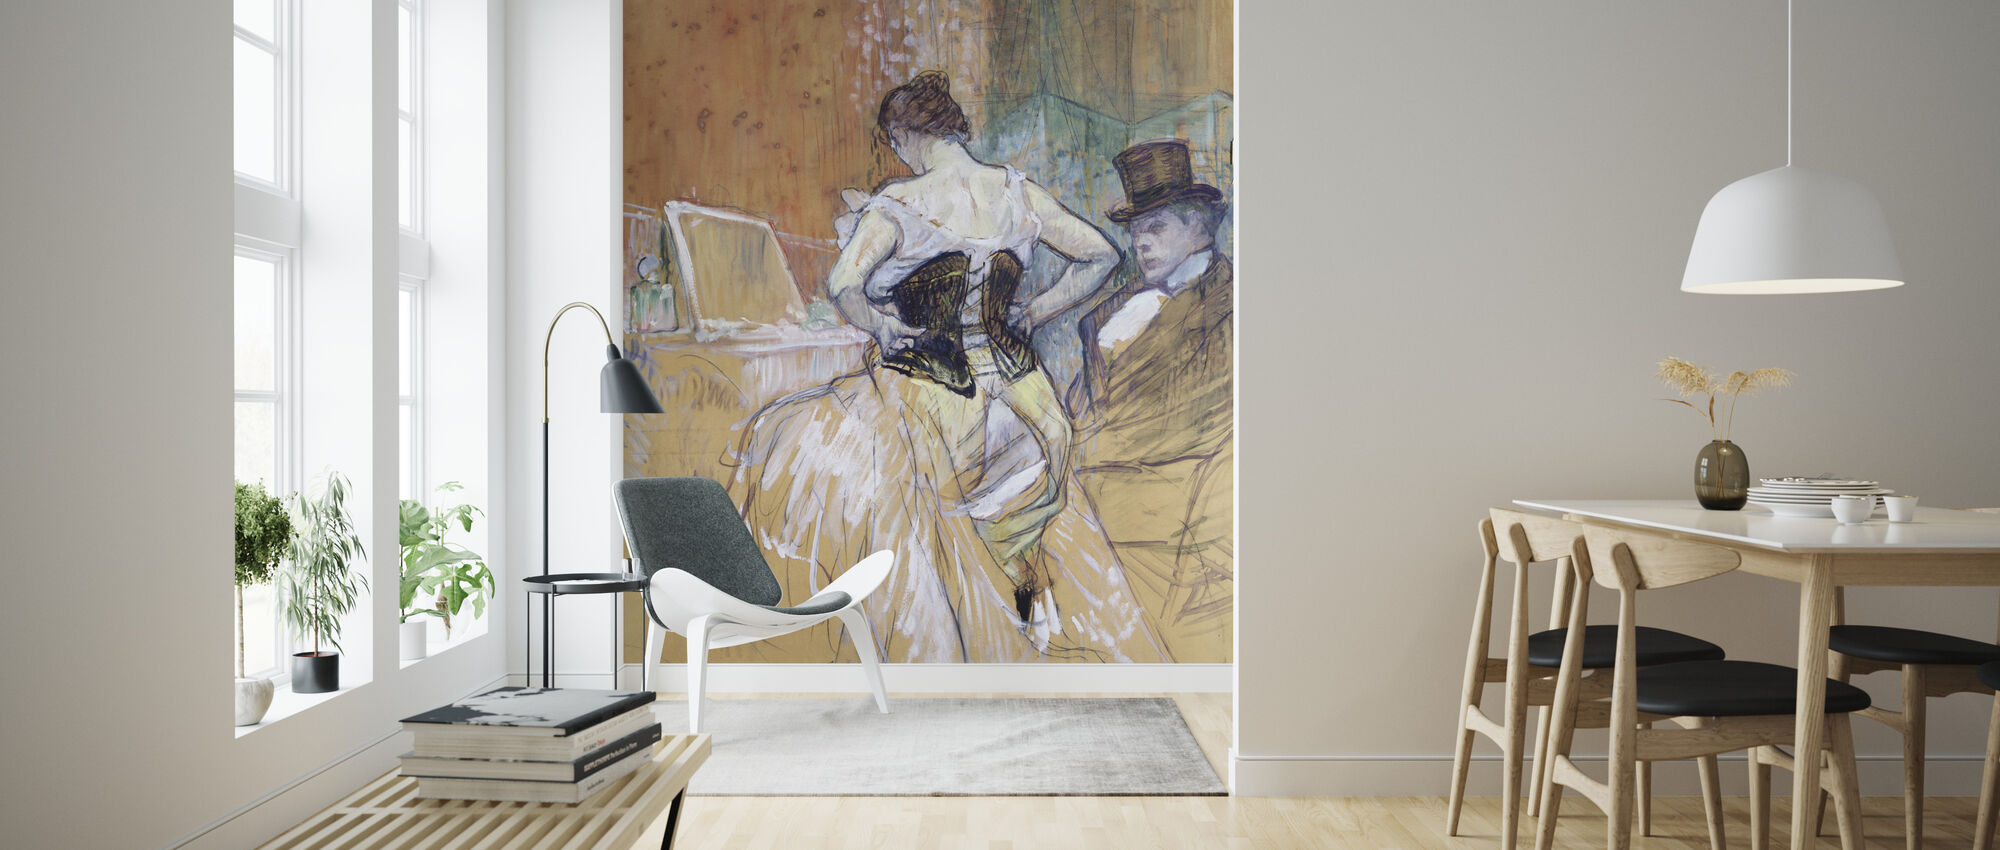 Women at her Toilet, Henri Toulouse Lautrec - Wallpaper - Living Room